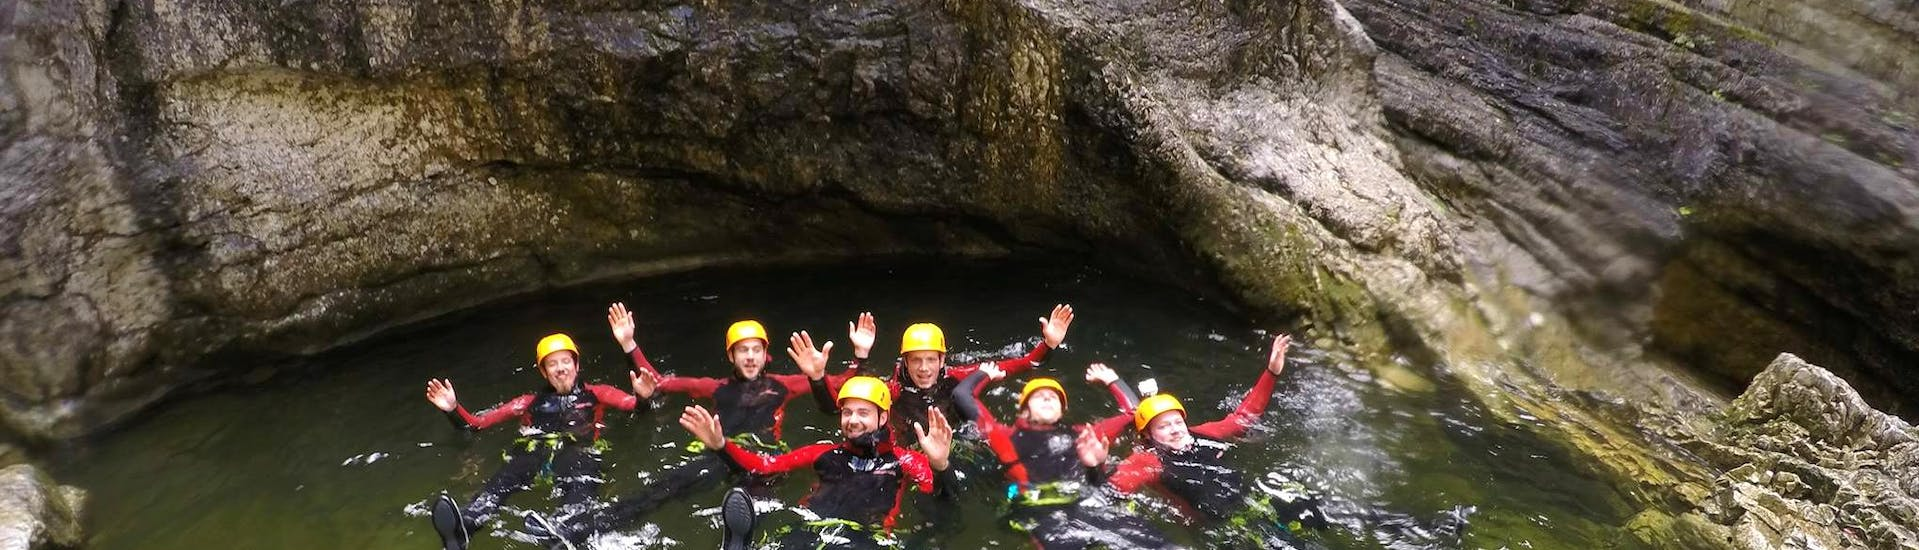 A group of men relaxing in a natural pool after celebrating their Bachelor Party with a Canyoning tour by CIA Canyoning in Austria & more Adventures.